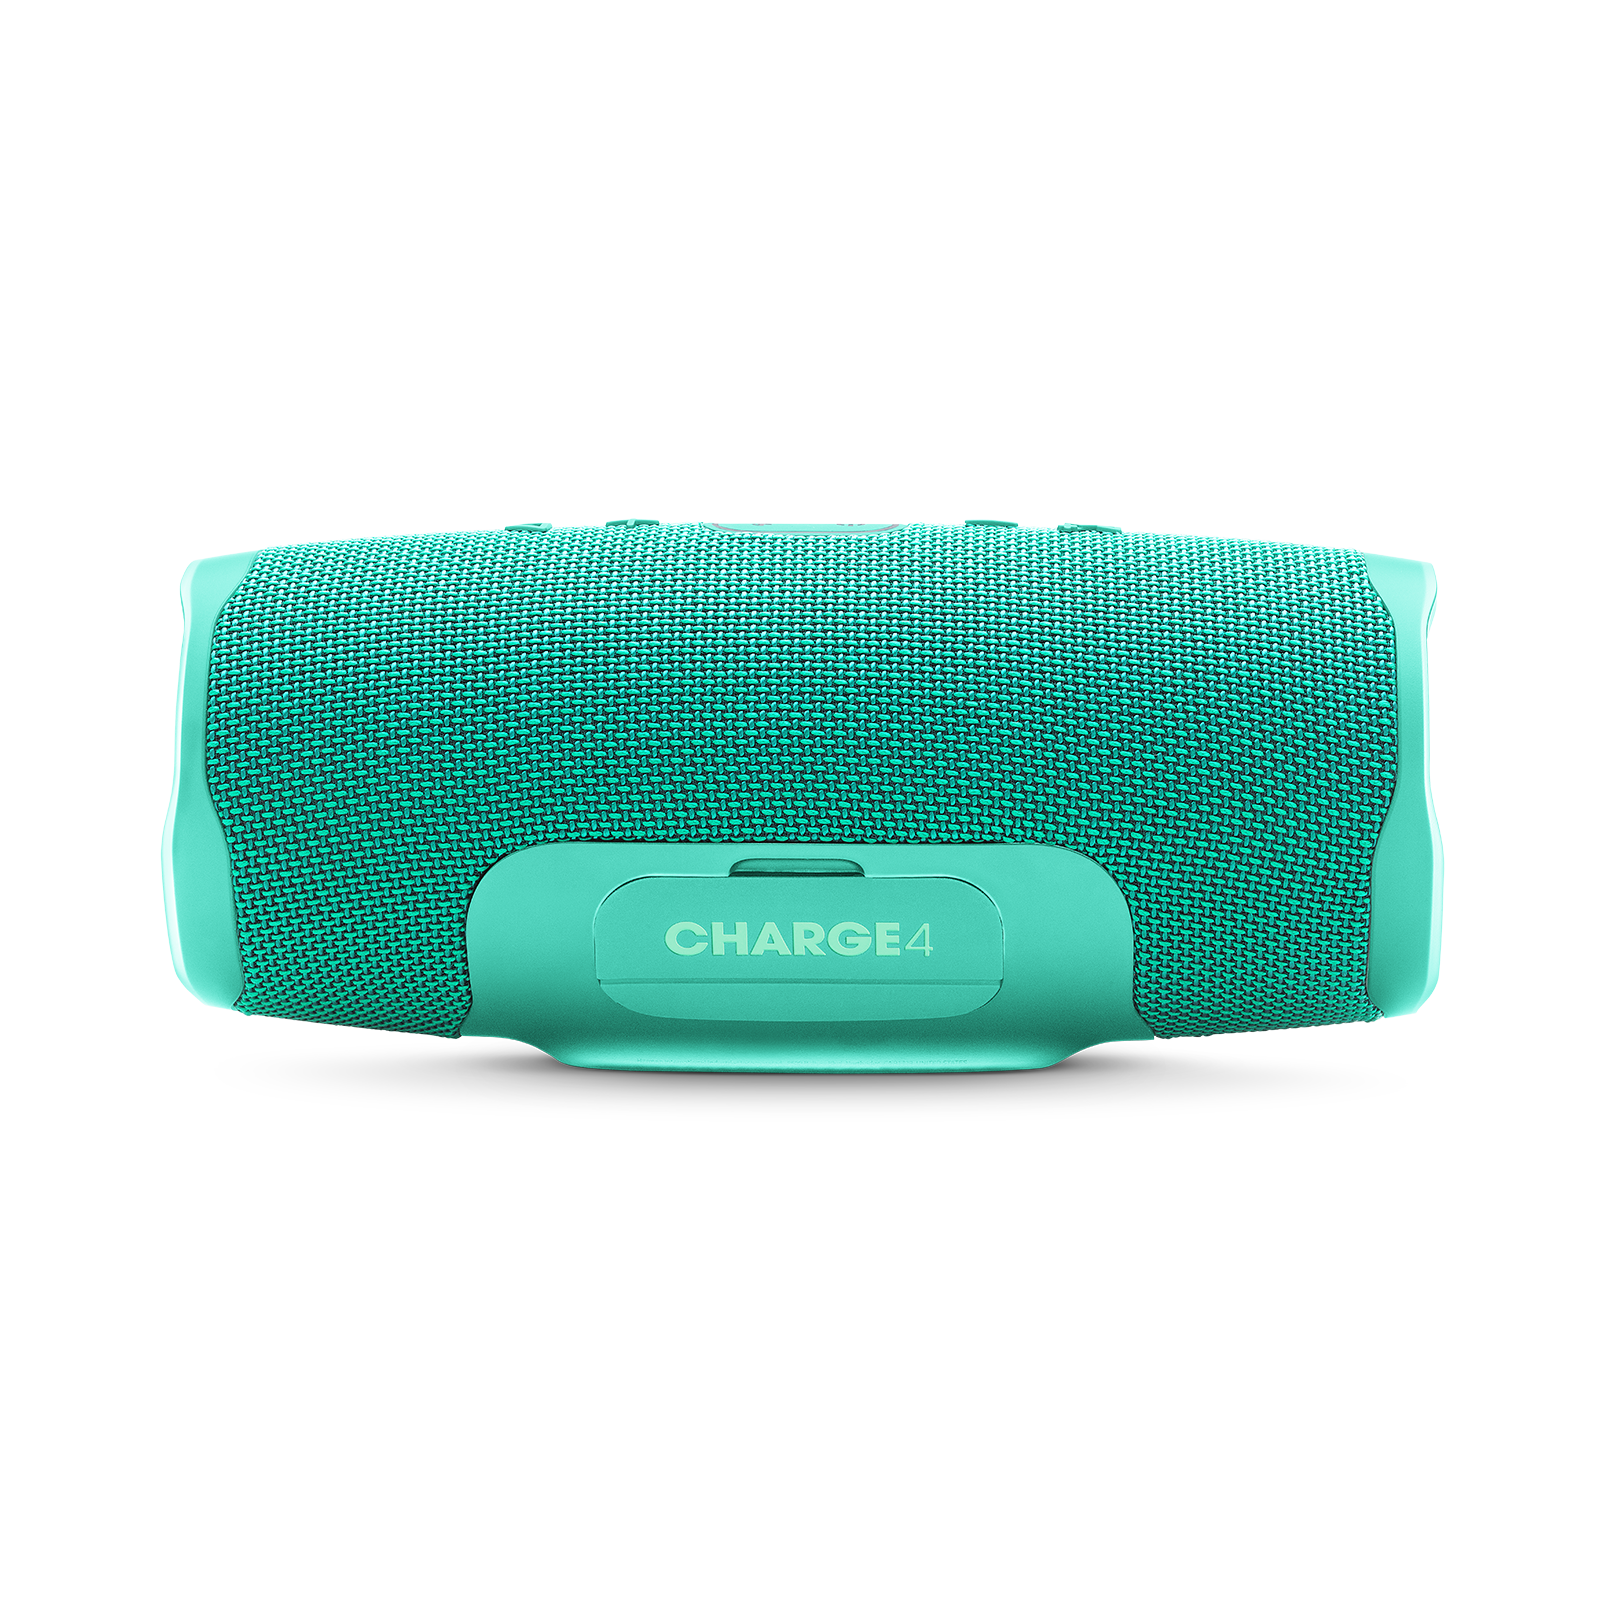 JBL Charge 4 - Teal - Portable Bluetooth speaker - Back